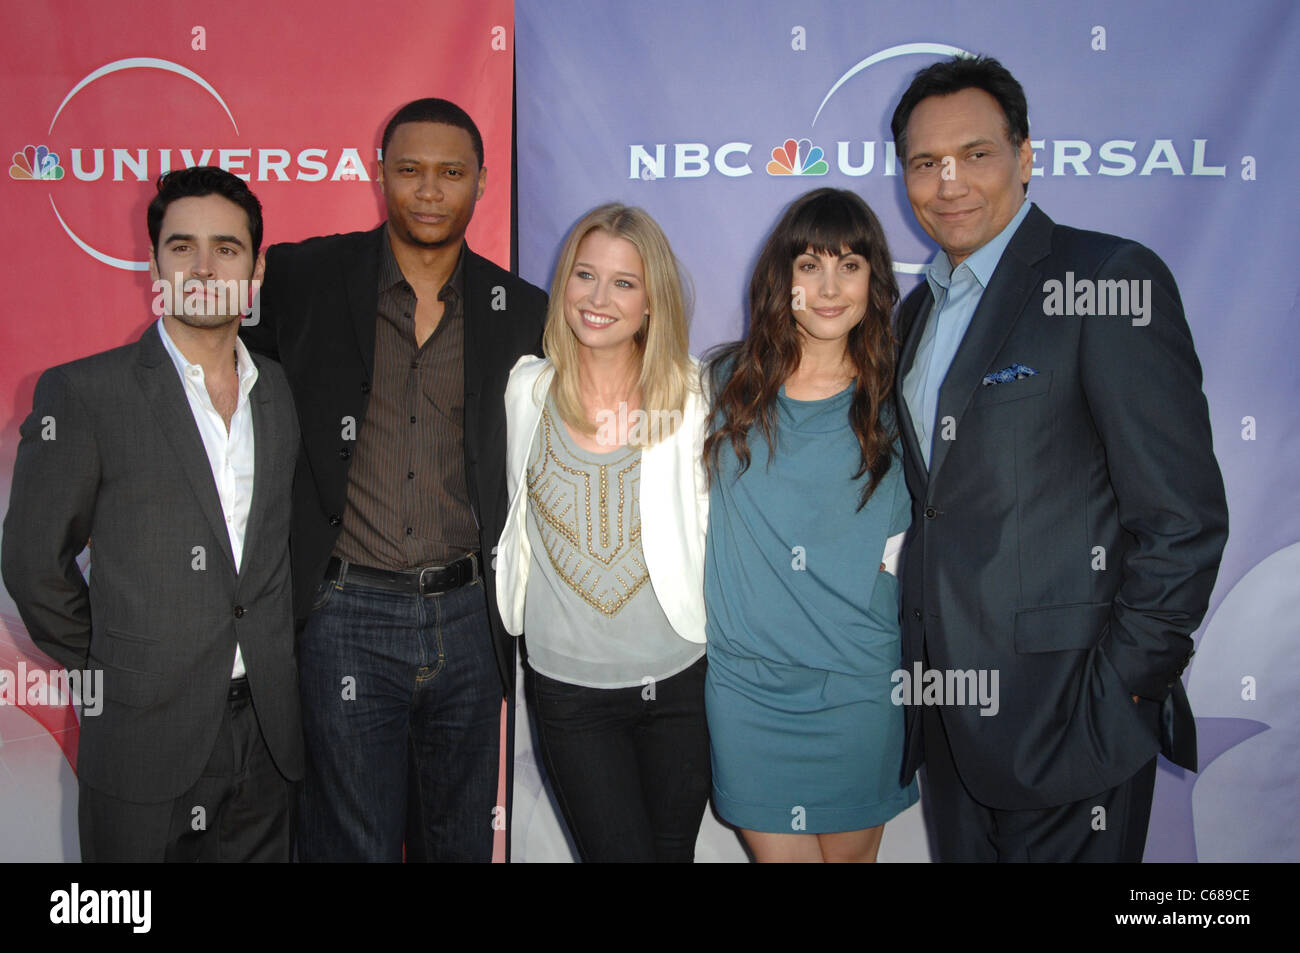 Outlaw Cast at arrivals for NBC Universal TCA Press Tour All-Star Party, Beverly Hilton Hotel, Beverly Hills, CA - Stock Image